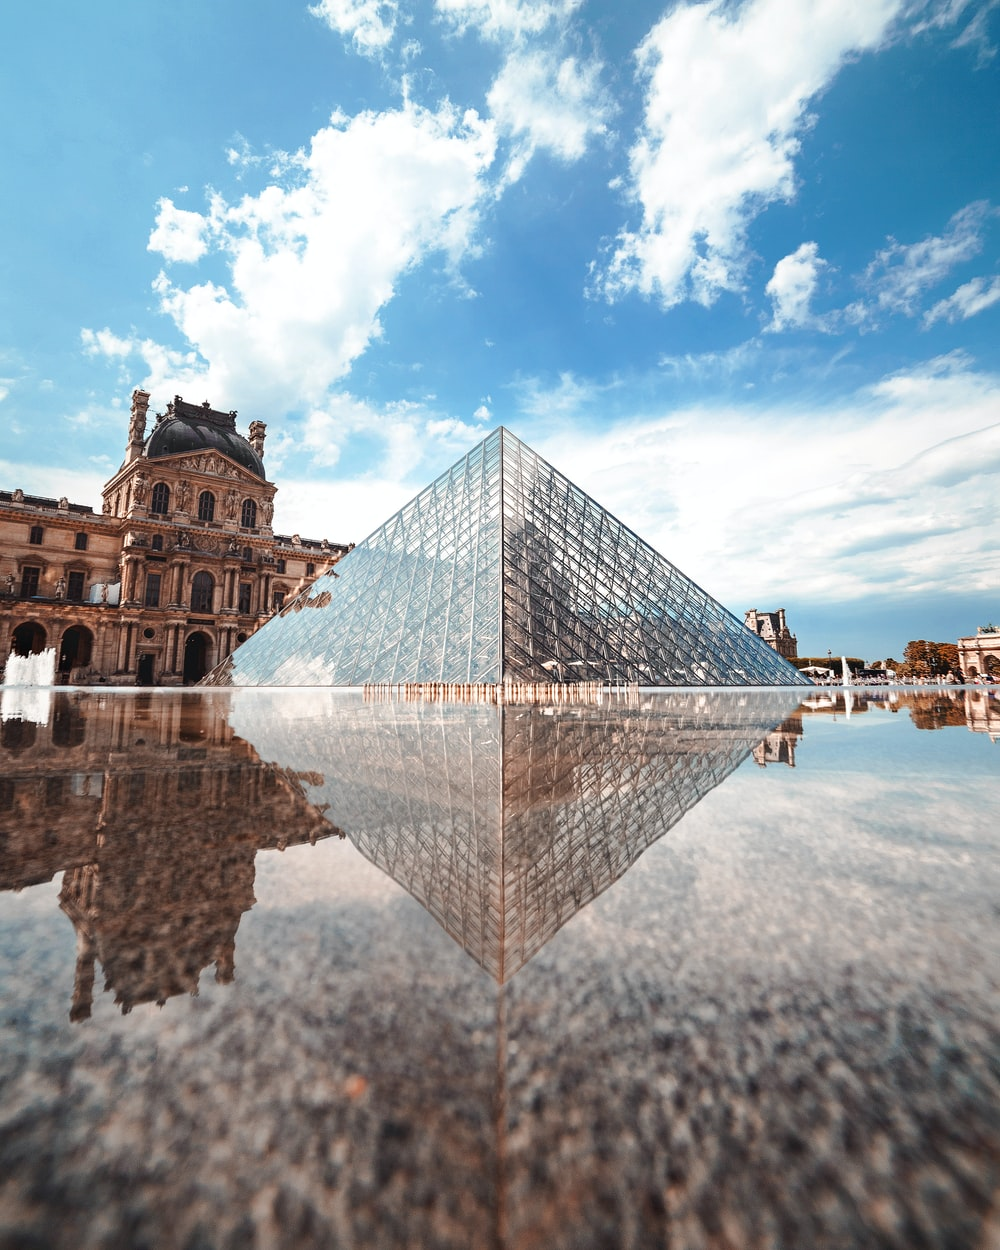 glass pyramid building near body of water during daytime